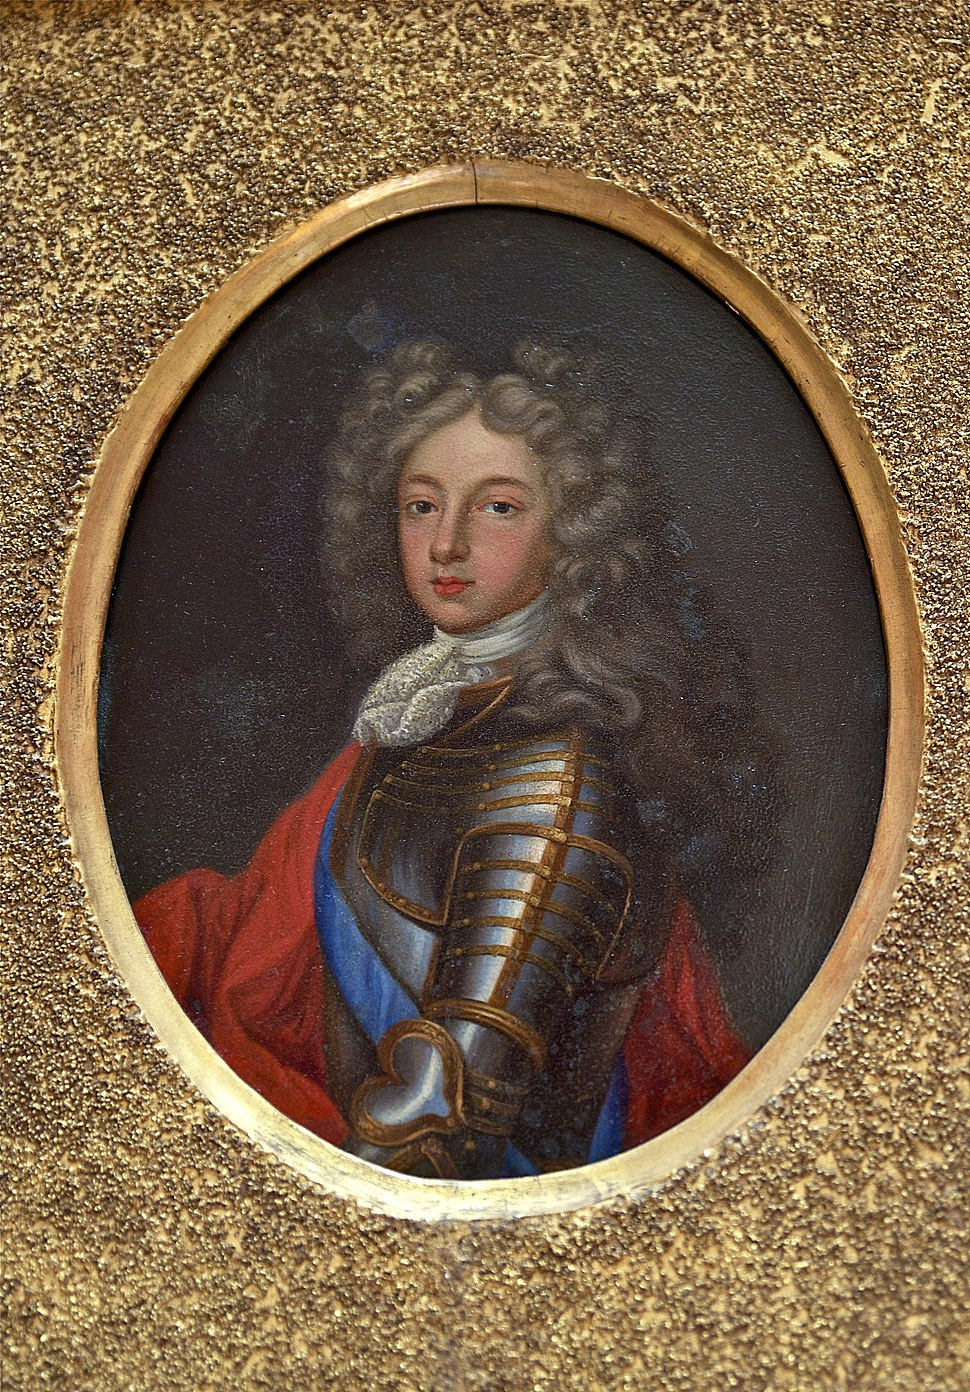 Philippe of France, Duke of Anjou by unknown artist